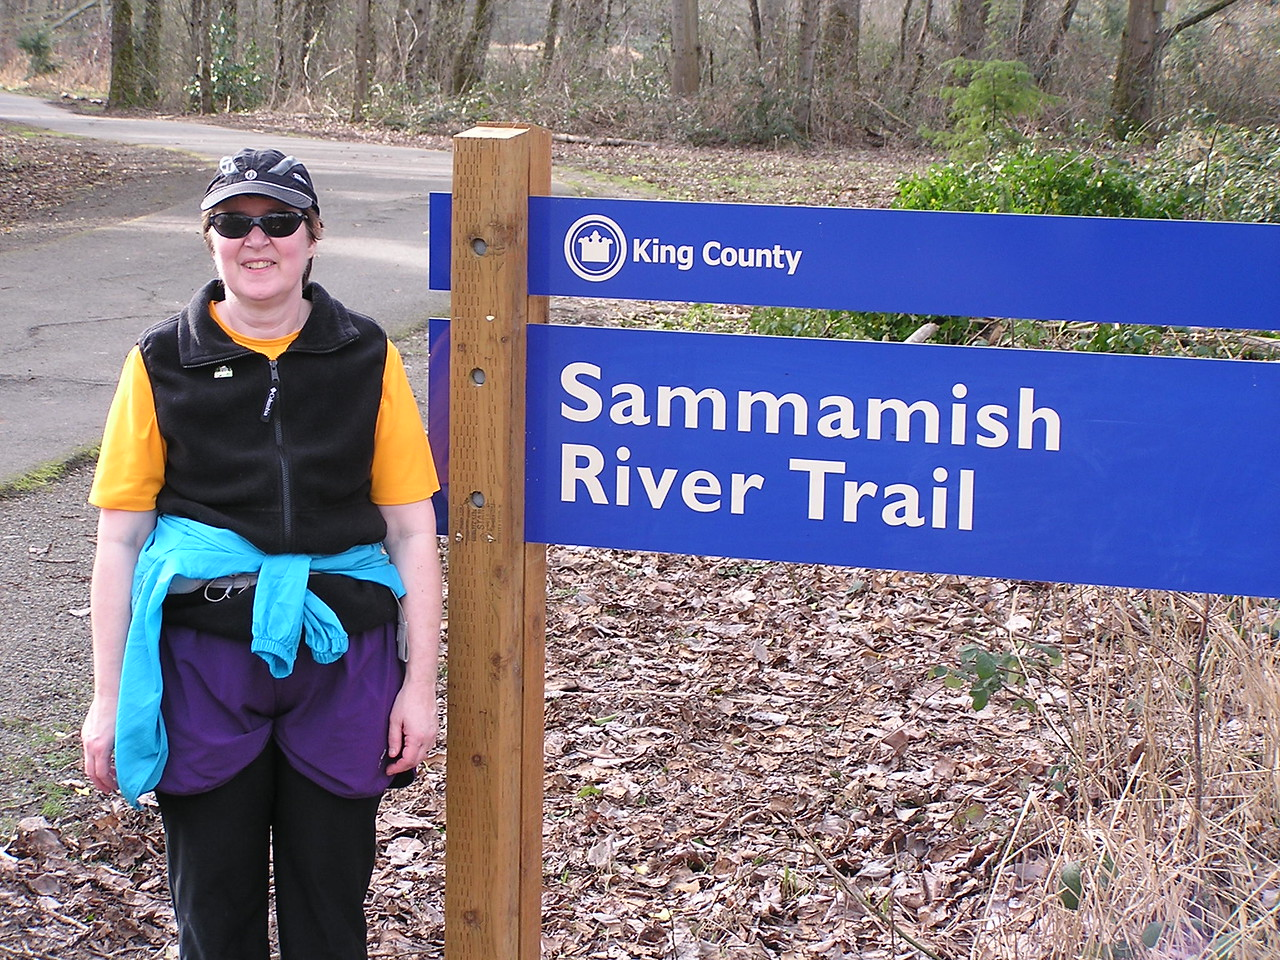 The Sammamish River runs through suburban Seattle between Lake Sammamish on the east and Lake Washington.  Luckily, a public trail has been preserved, mostly along an abandoned railroad bed.